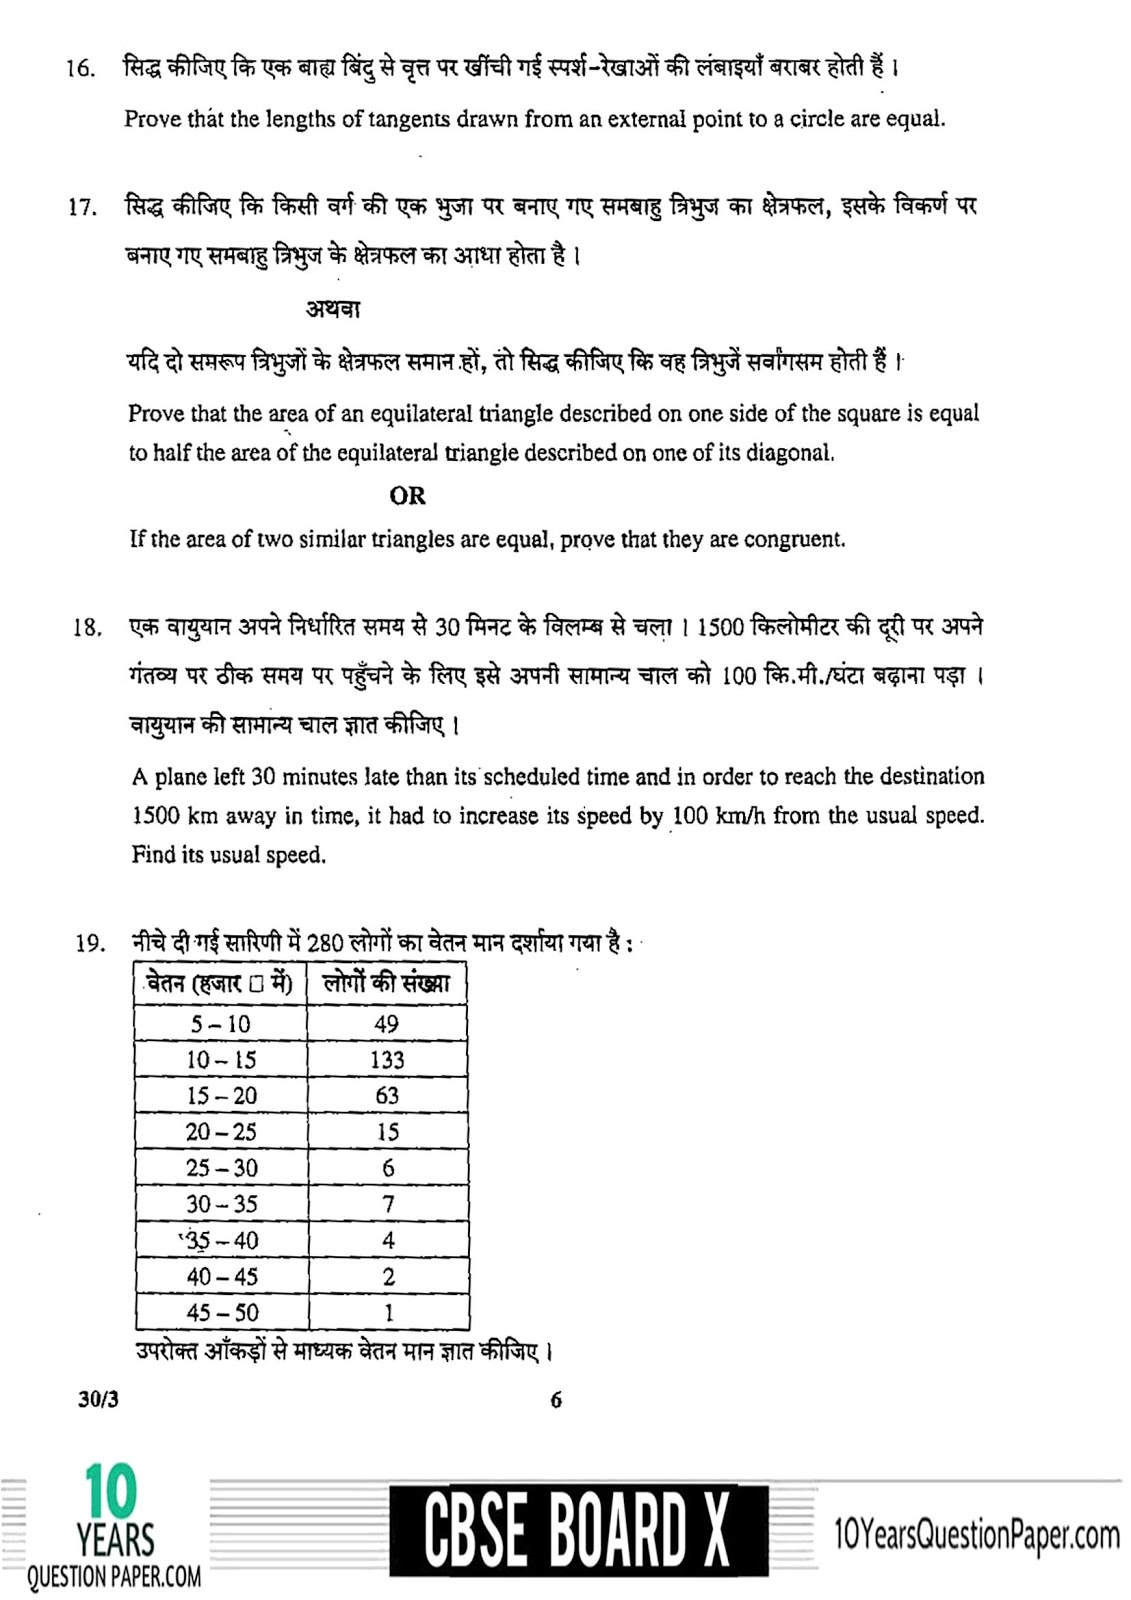 CBSE Board 2018 Maths Question paper Class 10 Page-06